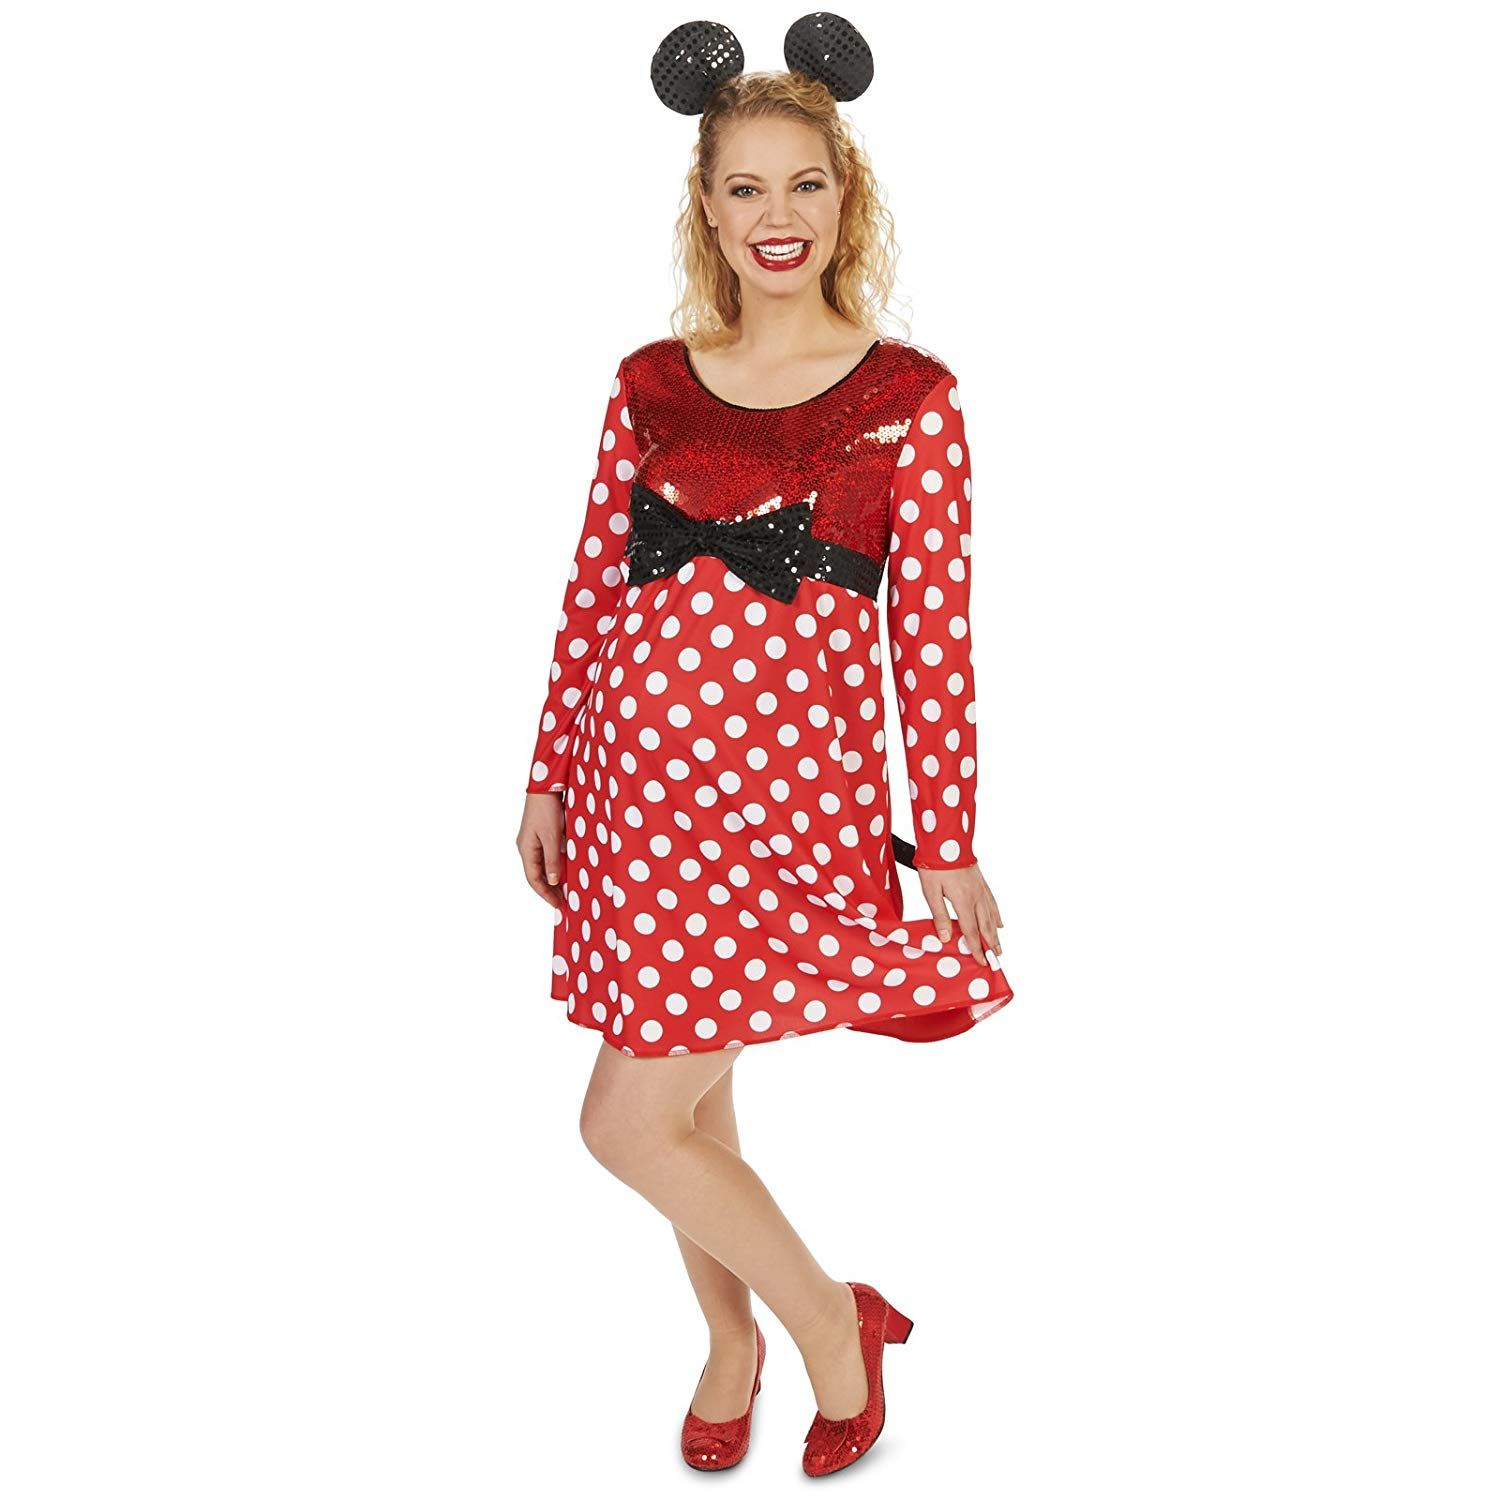 739f0a1d638e0 15 Best Pregnant Halloween Costumes - Fun Maternity Costumes for Pregnant  Women